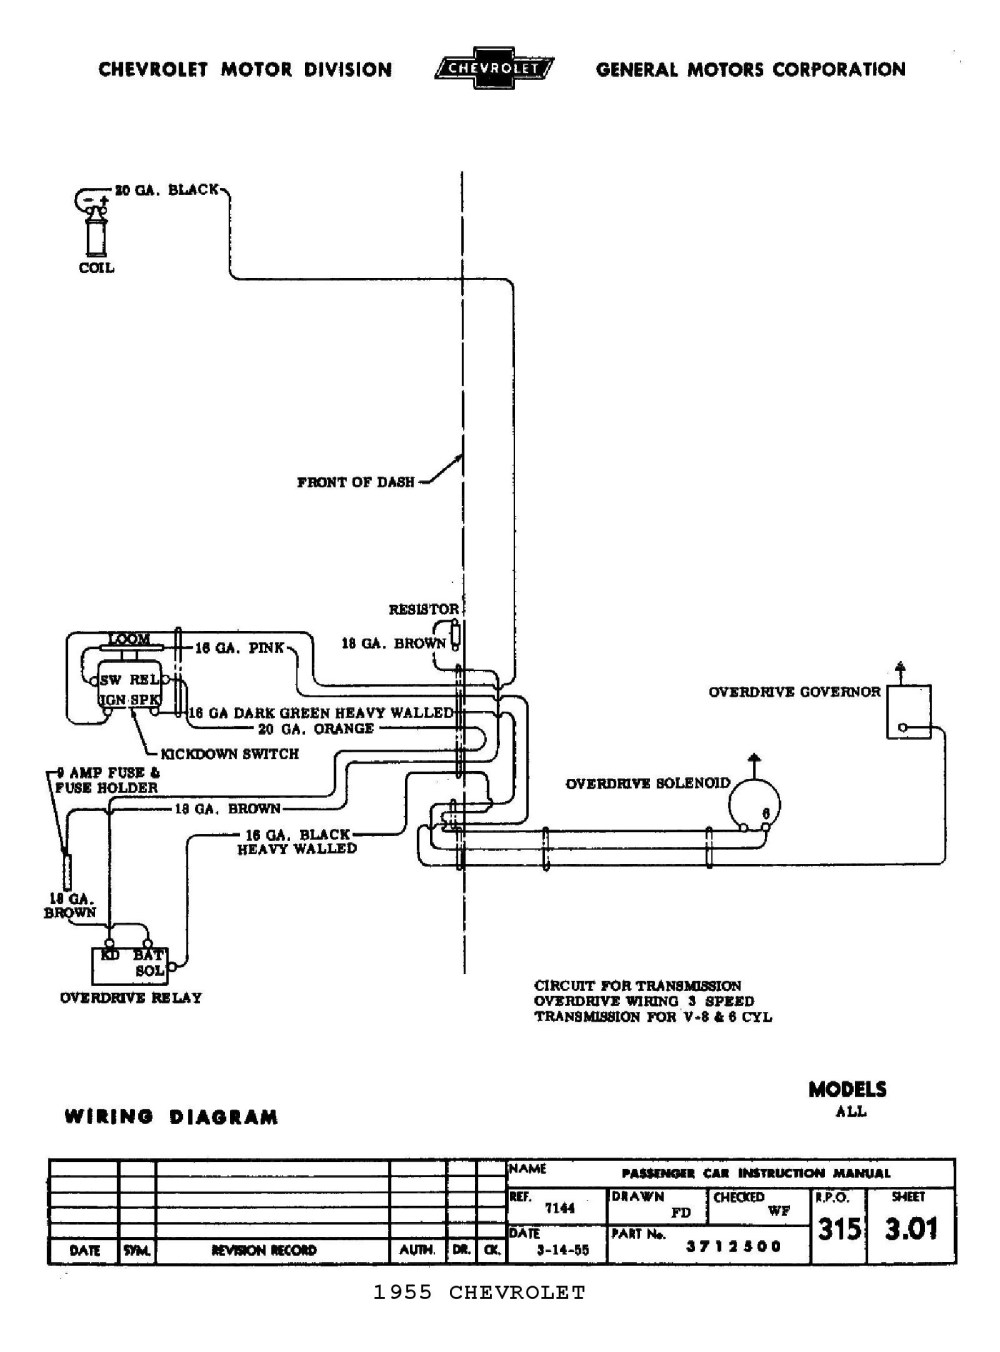 medium resolution of 1958 chevrolet steering column wiring wiring diagram technicsteering column wiring diagrams wiring diagram newwiring diagram chevy